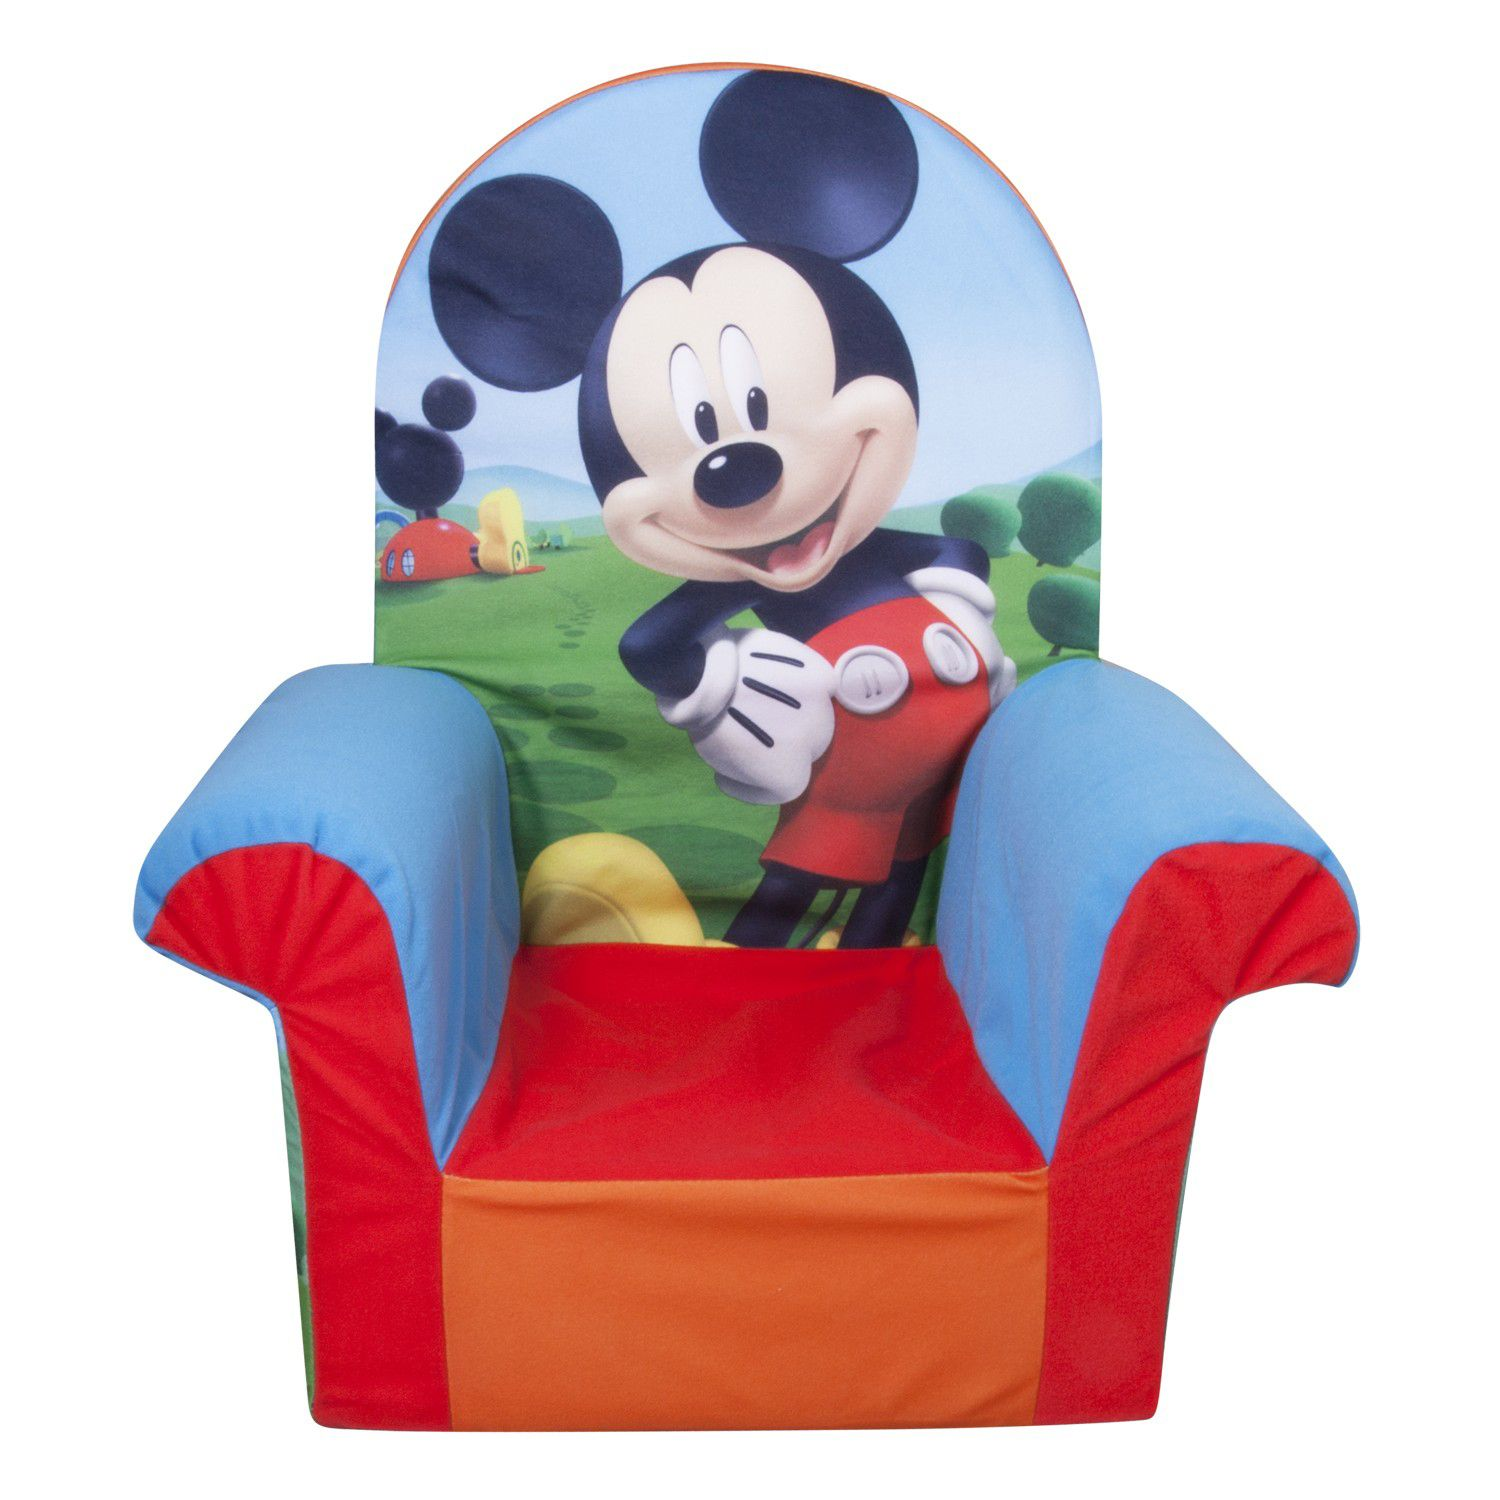 Beautiful Disneyu0027s Mickey Mouse Club House Chair By Marshmallow Furniture